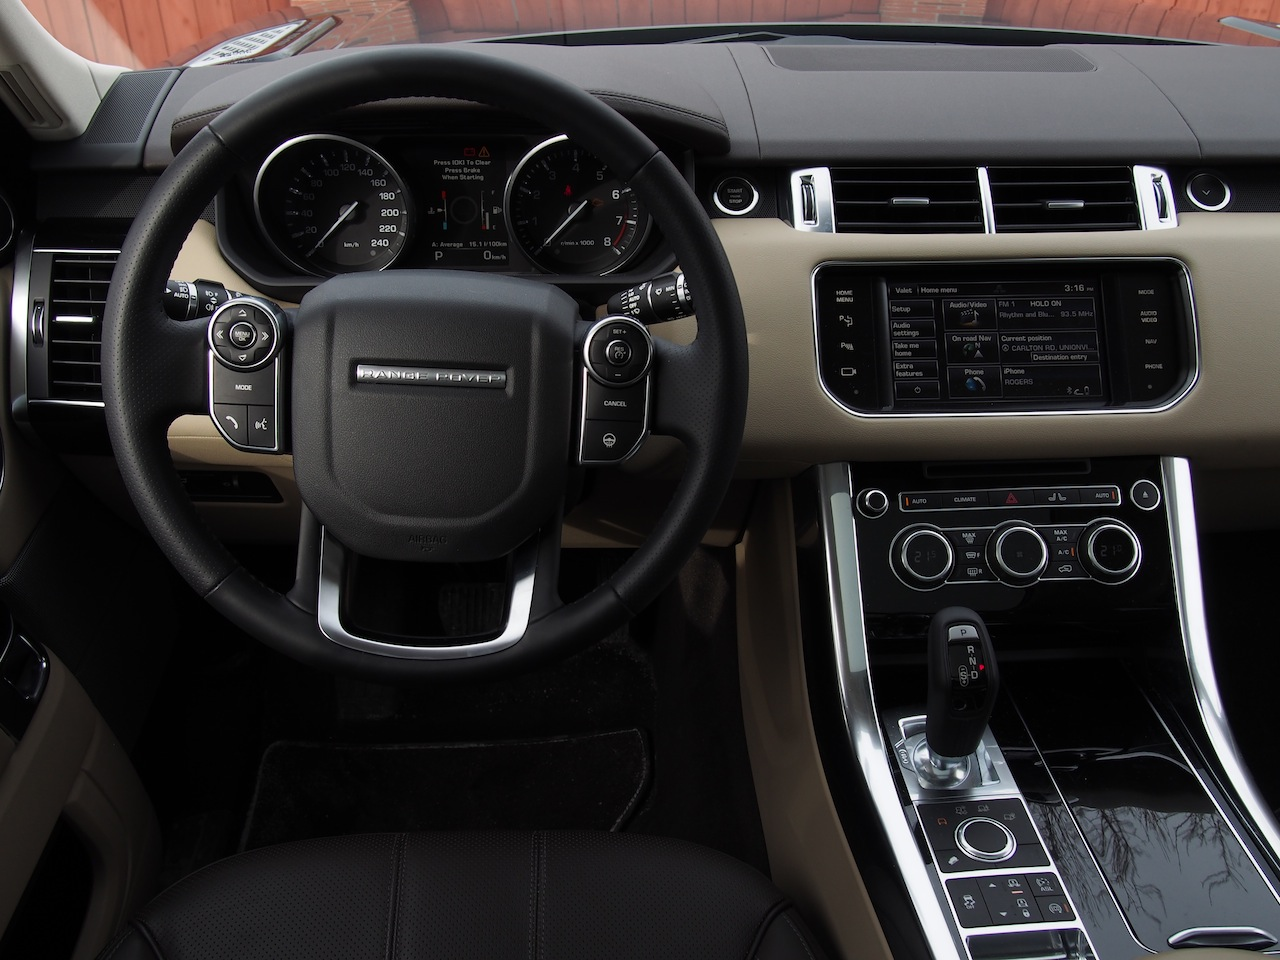 Range Rover Interior 2014 Images Galleries With A Bite